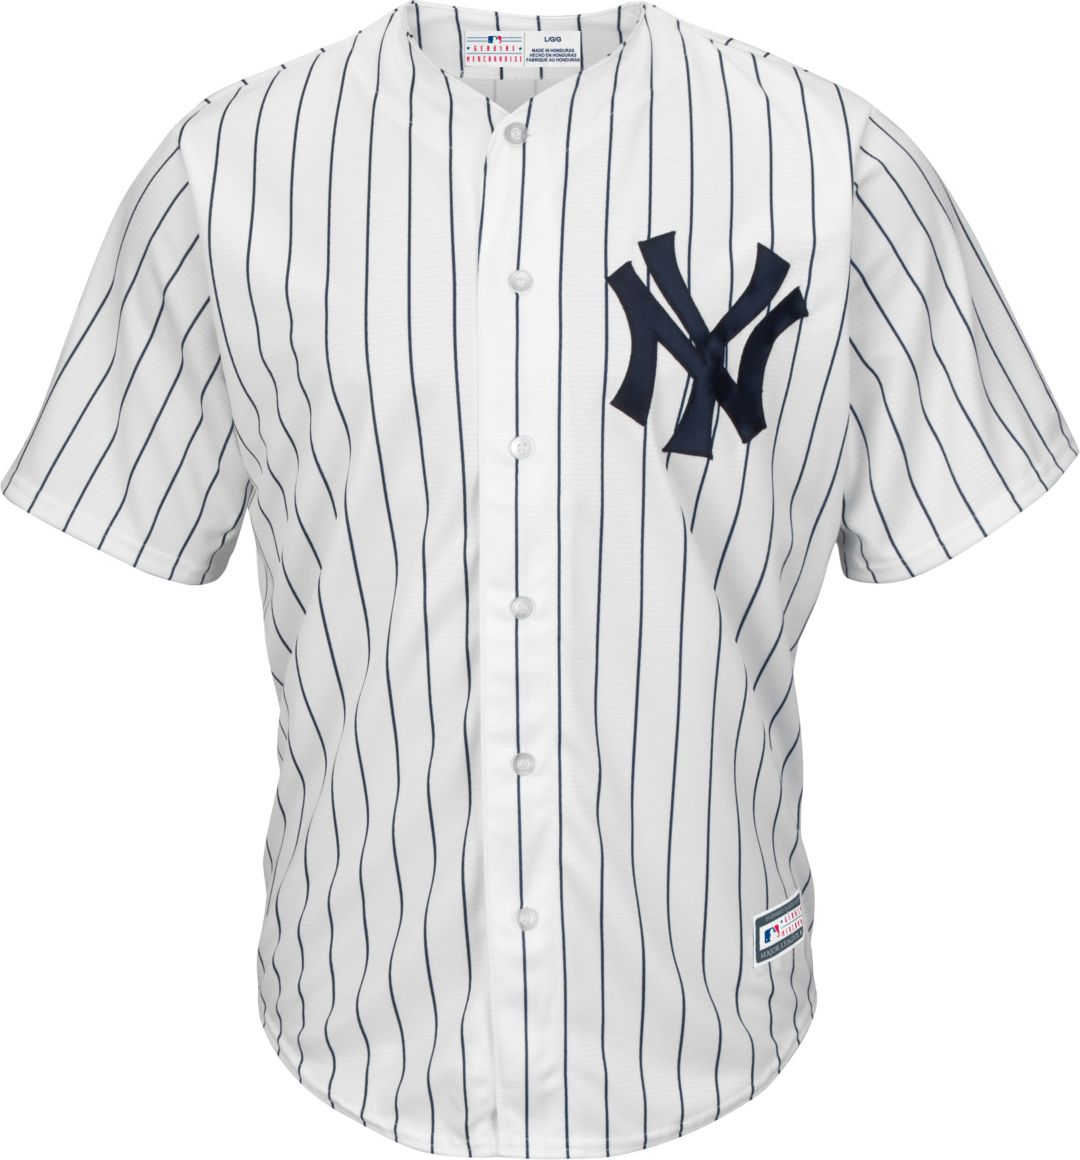 sports shoes a34c6 d087c Youth Replica New York Yankees Aaron Judge #99 Home White Jersey